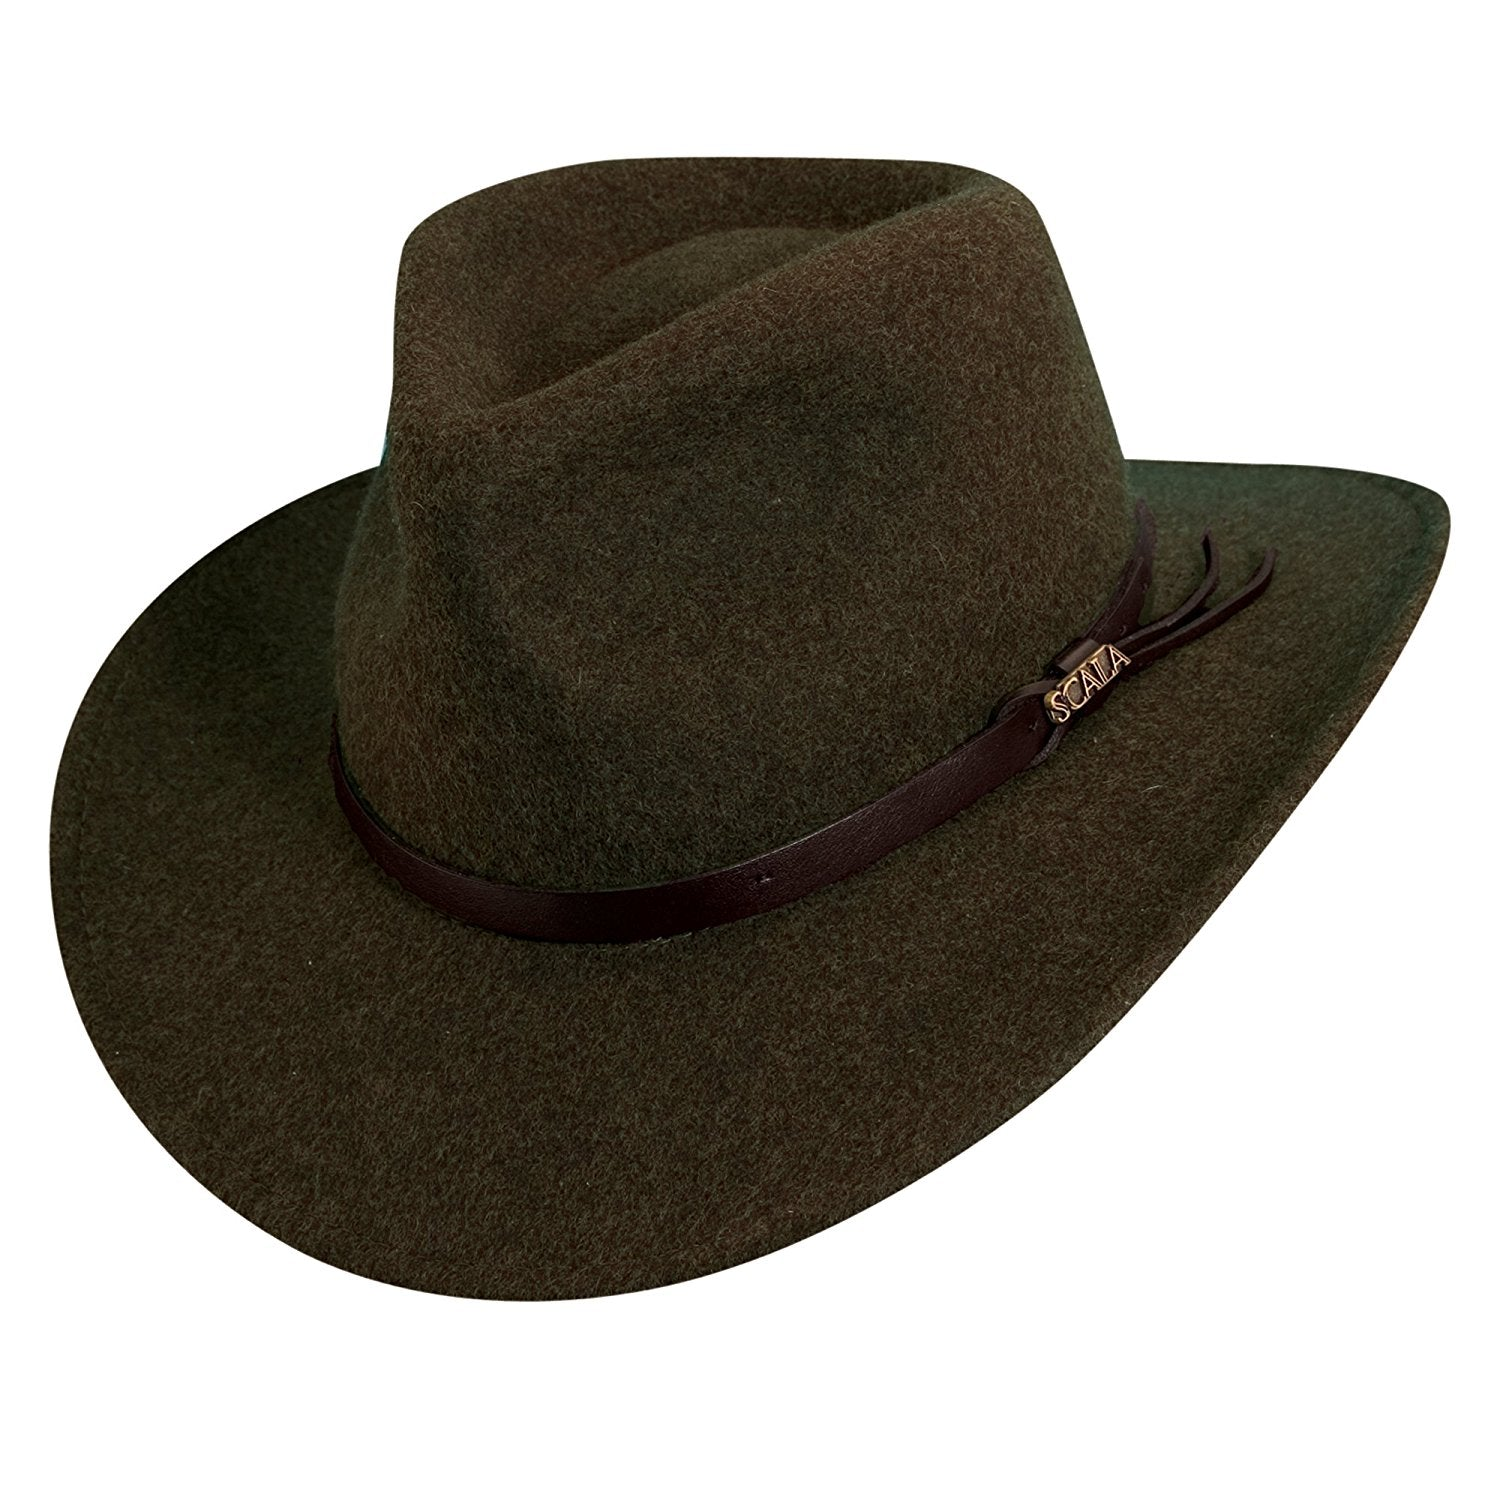 b8e70b6f New Scala Classico crush-able water repellent brown wool felt outback hat  (DF49)